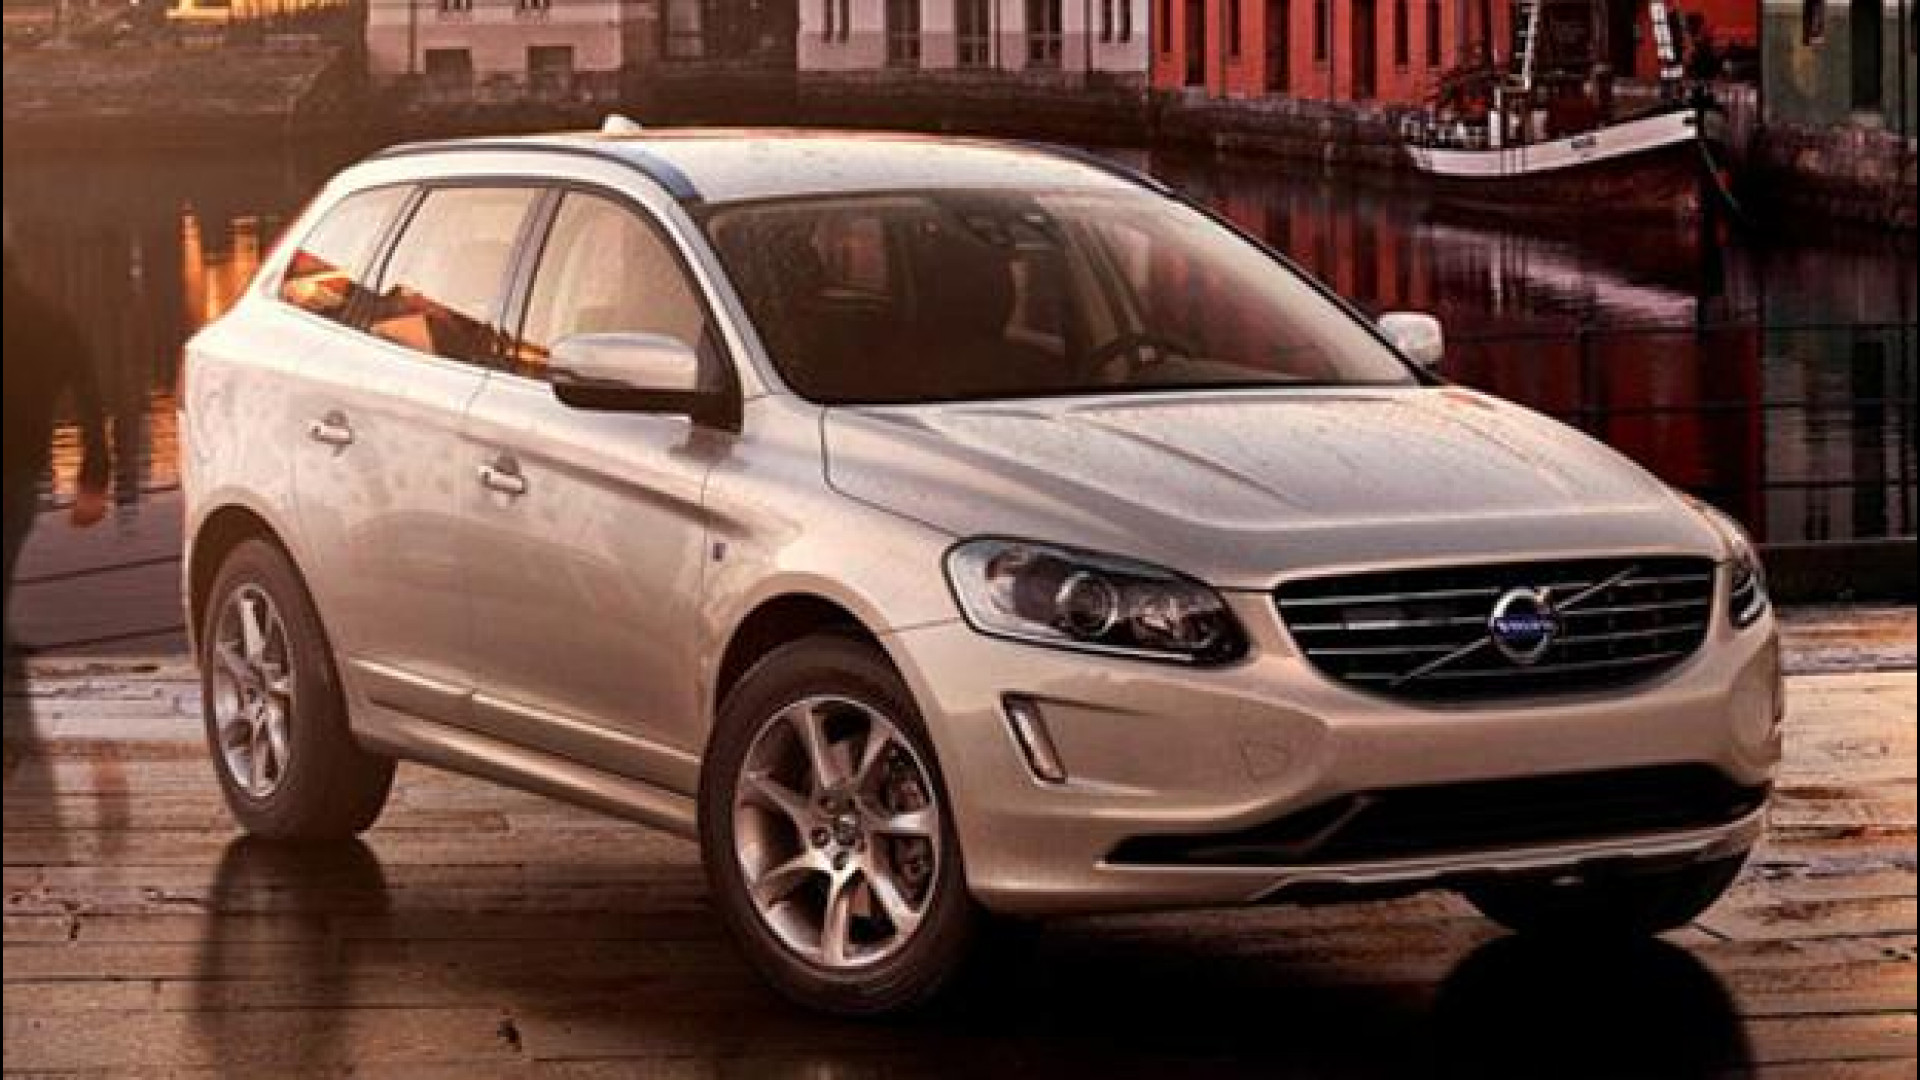 Tappeti Gomma Volvo V60 Volvo V40 V40 Cross Country V60 E Xc60 Ocean Race Edition